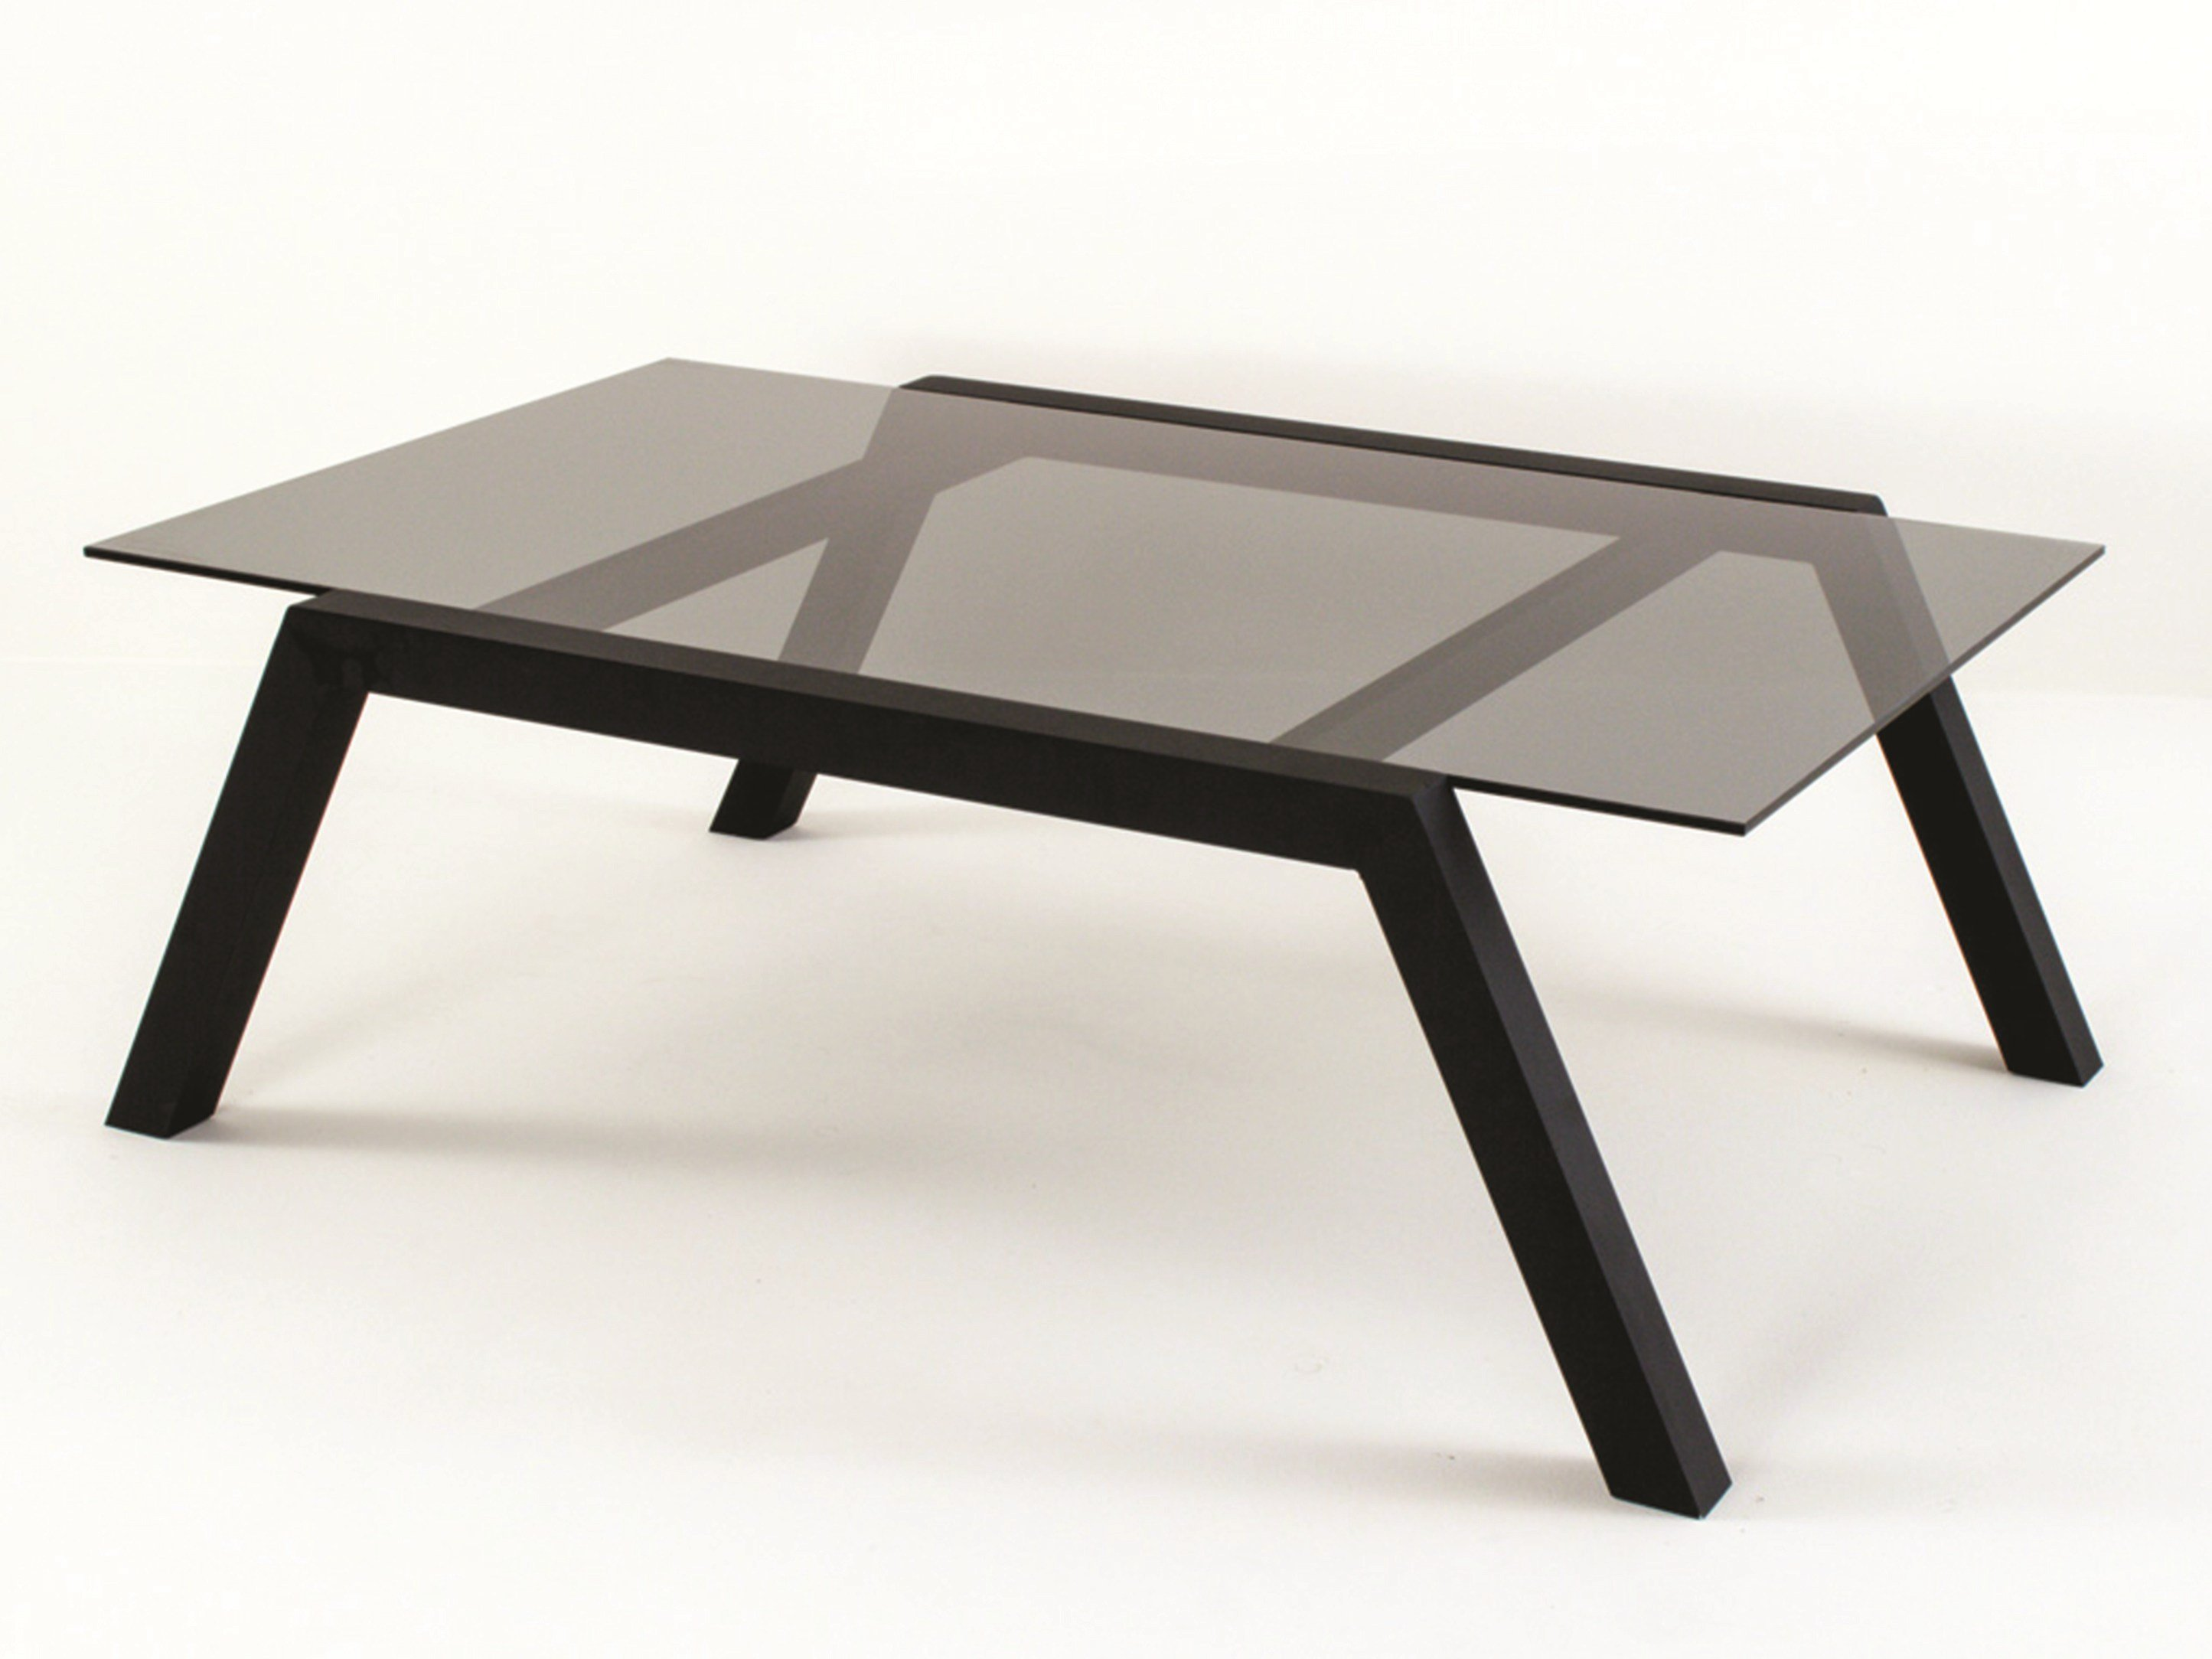 Corner Aluminium Coffee Table Corner Collection By Efasma